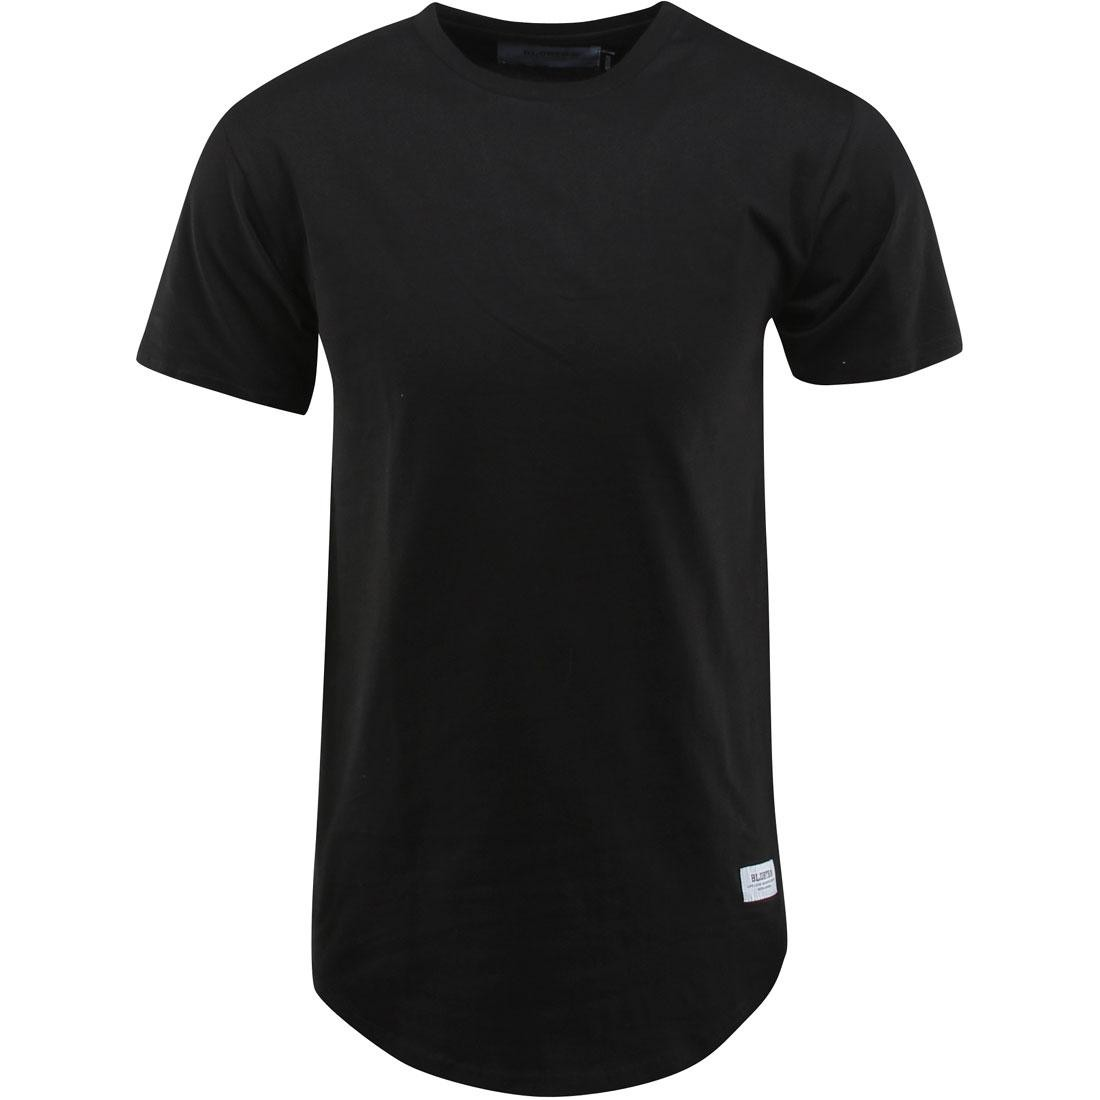 Bloodbath Cotton Extended Tee (black)